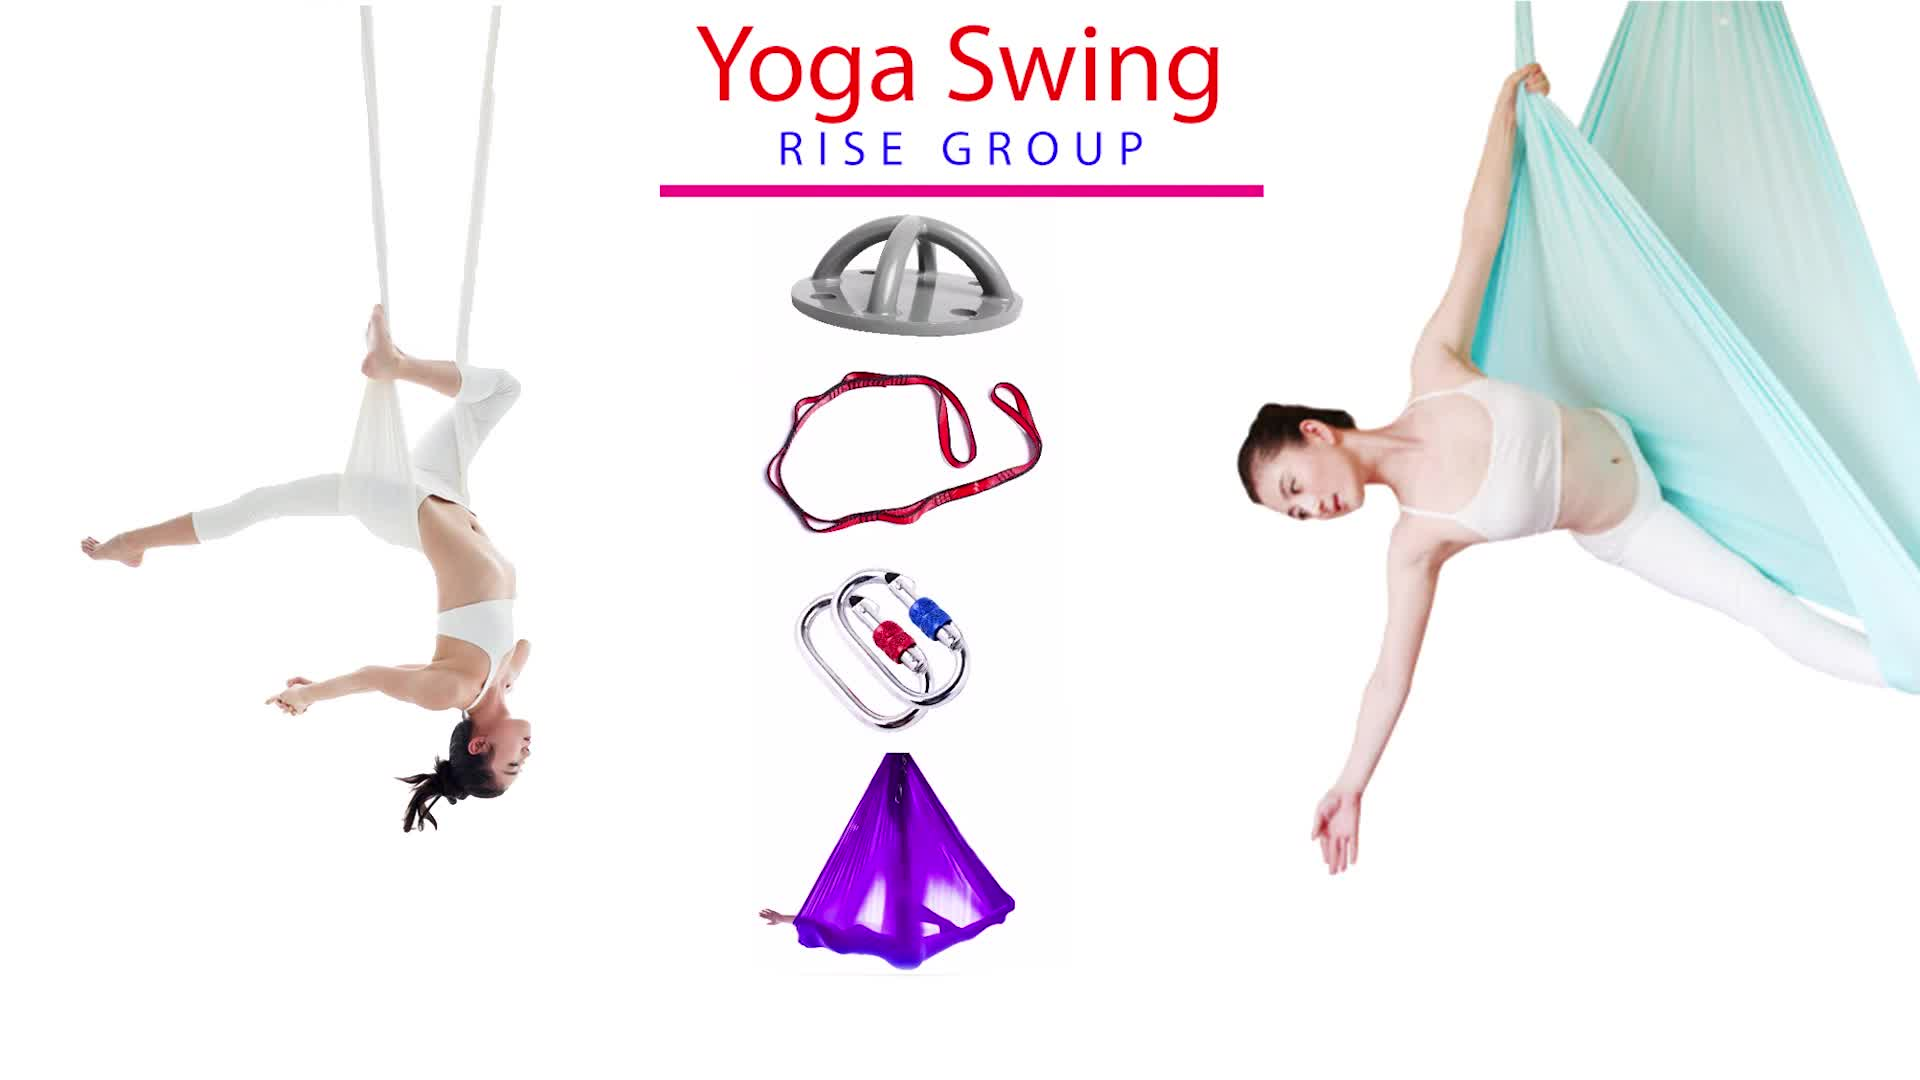 yoga swing hammock sling for antigravity yoga exercise aerial yoga swing band hammock